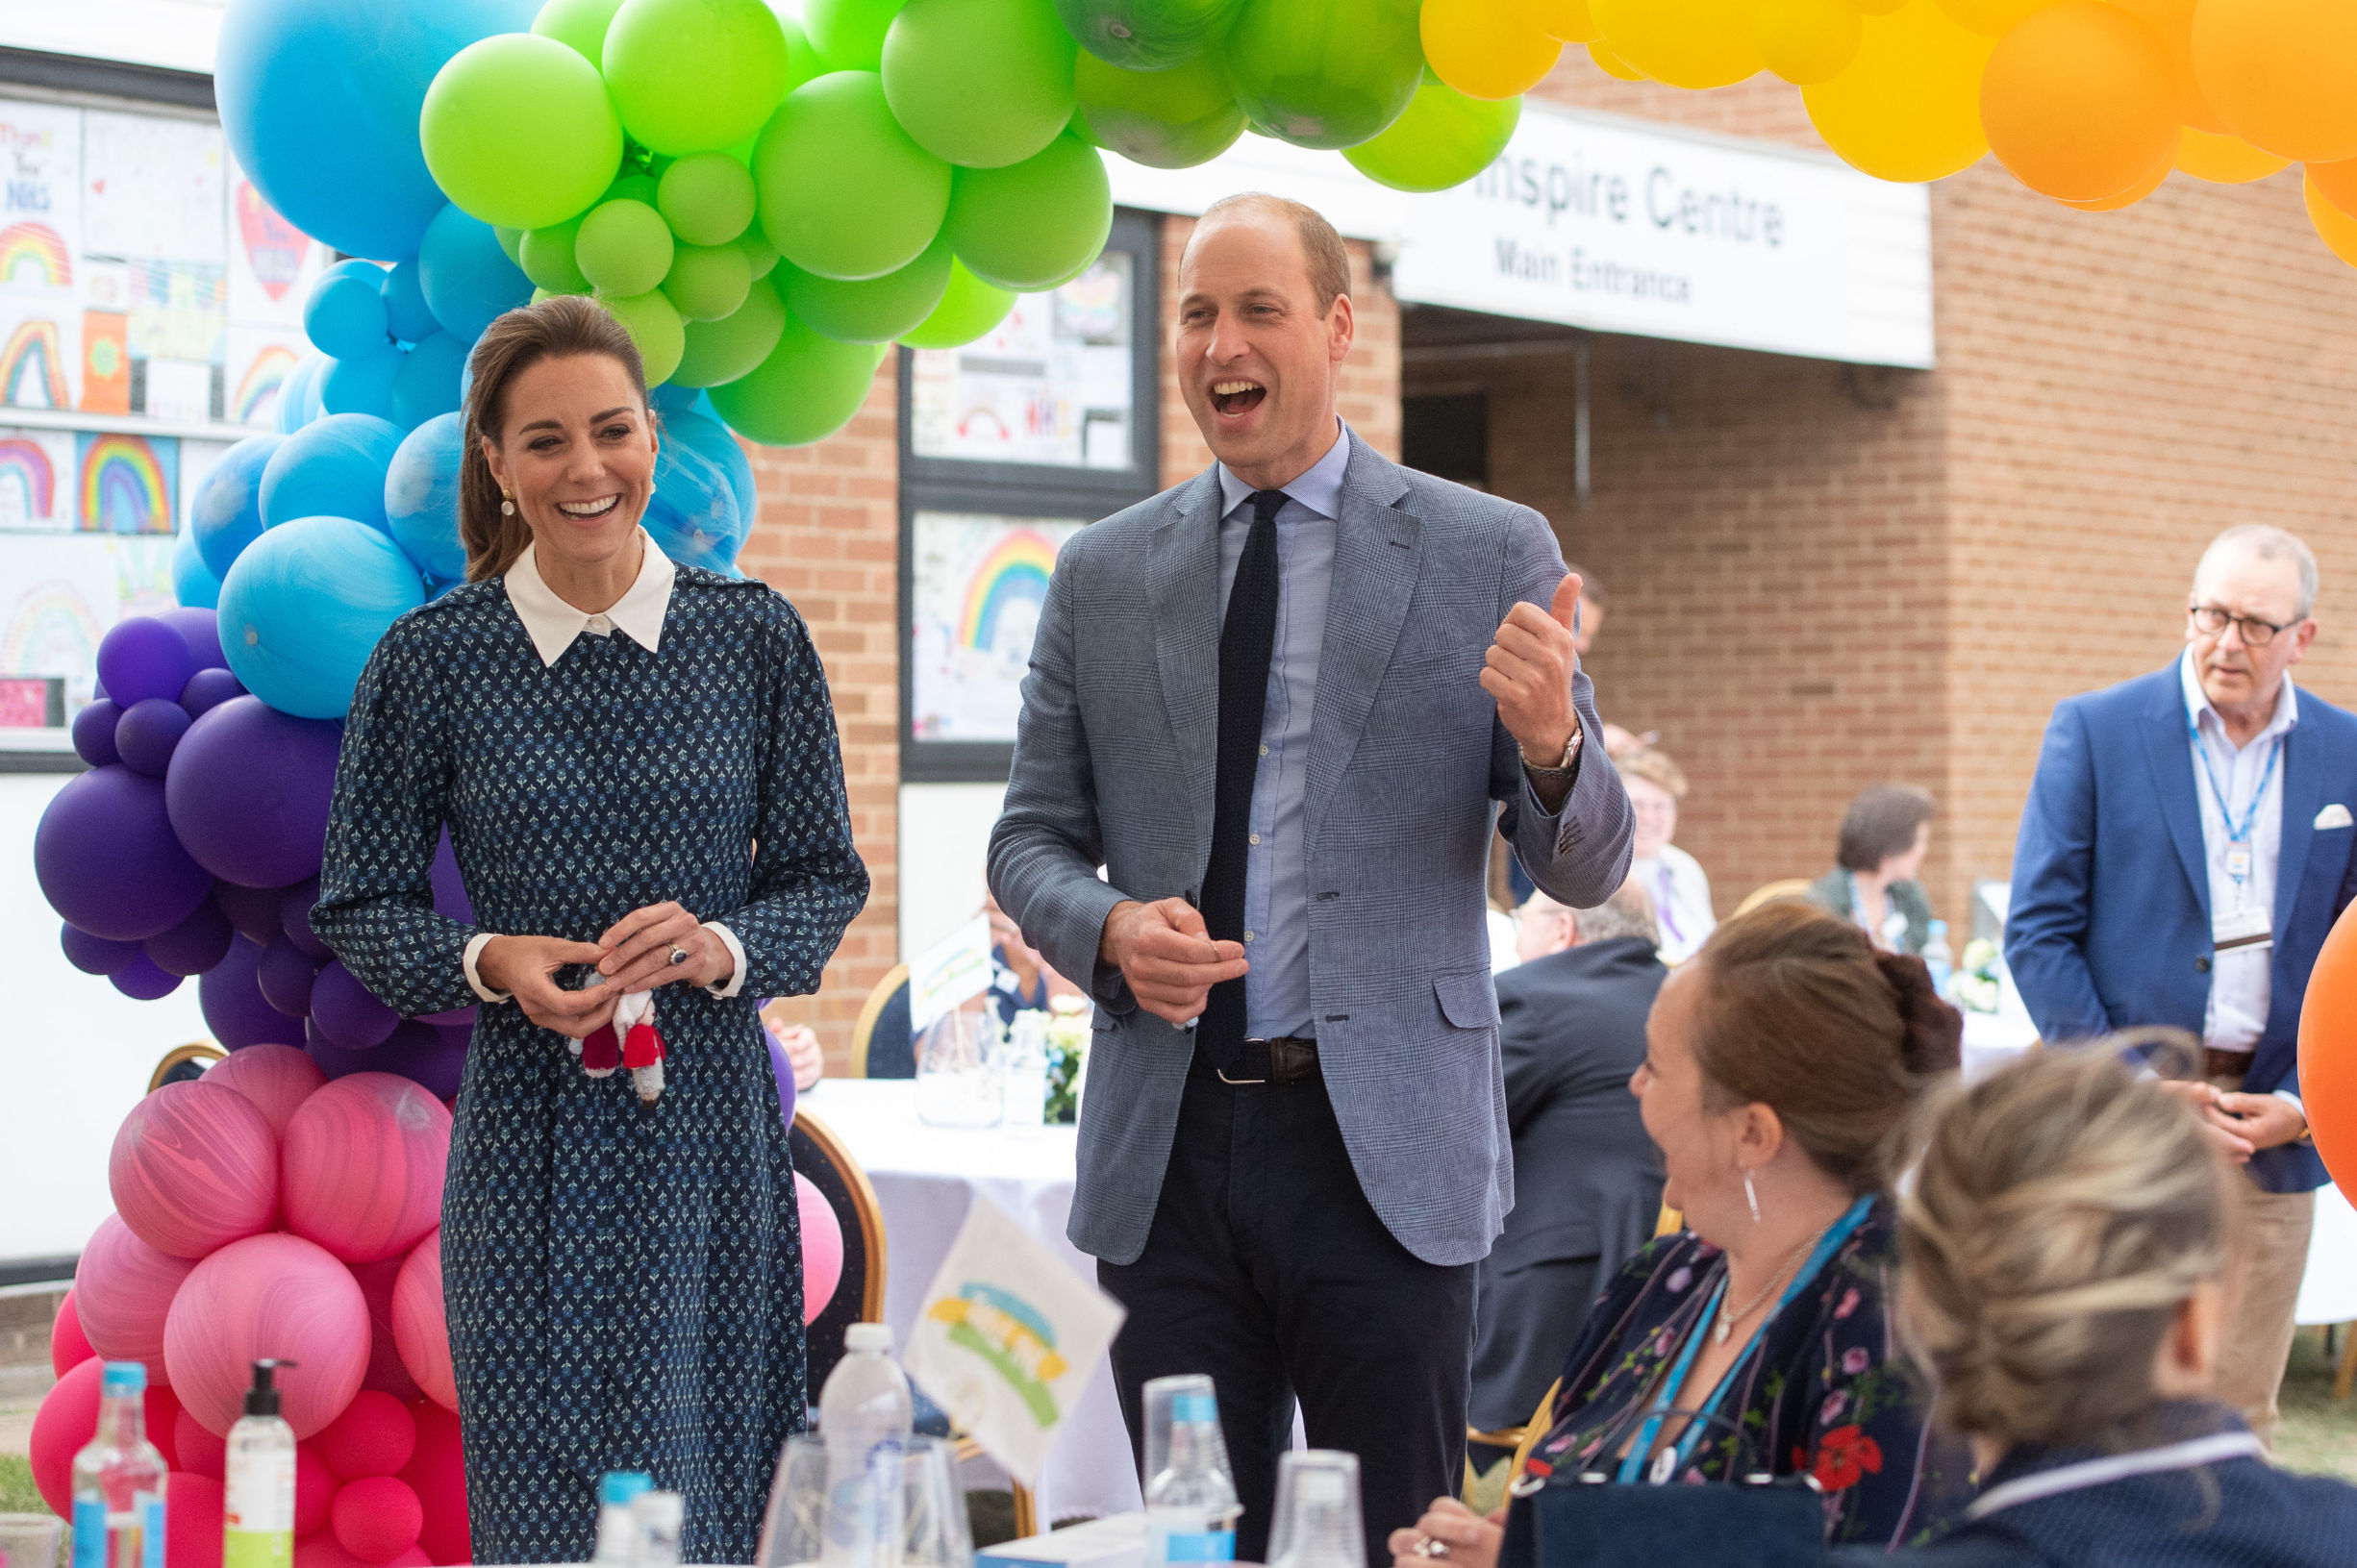 Prince William and Catherine Duchess of Cambridge during their visit to Queen Elizabeth Hospital in King's Lynn as part of the NHS birthday celebrations Prince William and Catherine Duchess of Cambridge visit to Queen Elizabeth Hospital, King's Lynn, UK - 05 Jul 2020,Image: 540402299, License: Rights-managed, Restrictions: , Model Release: no, Credit line: - / Shutterstock Editorial / Profimedia